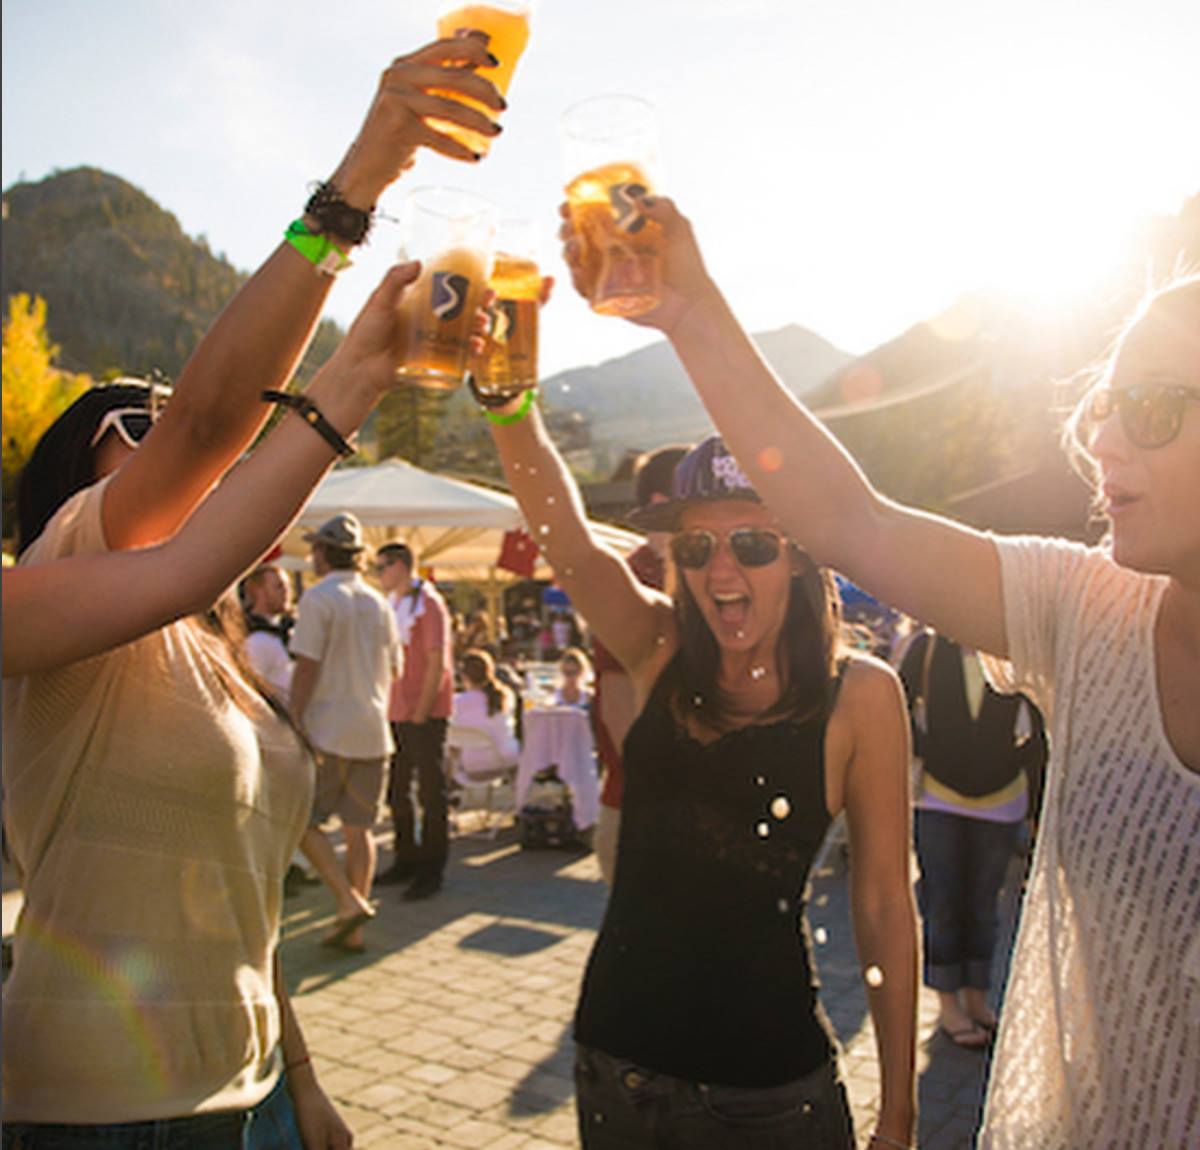 Revelers enjoy fun in the sun at Lake Tahoe's food festival